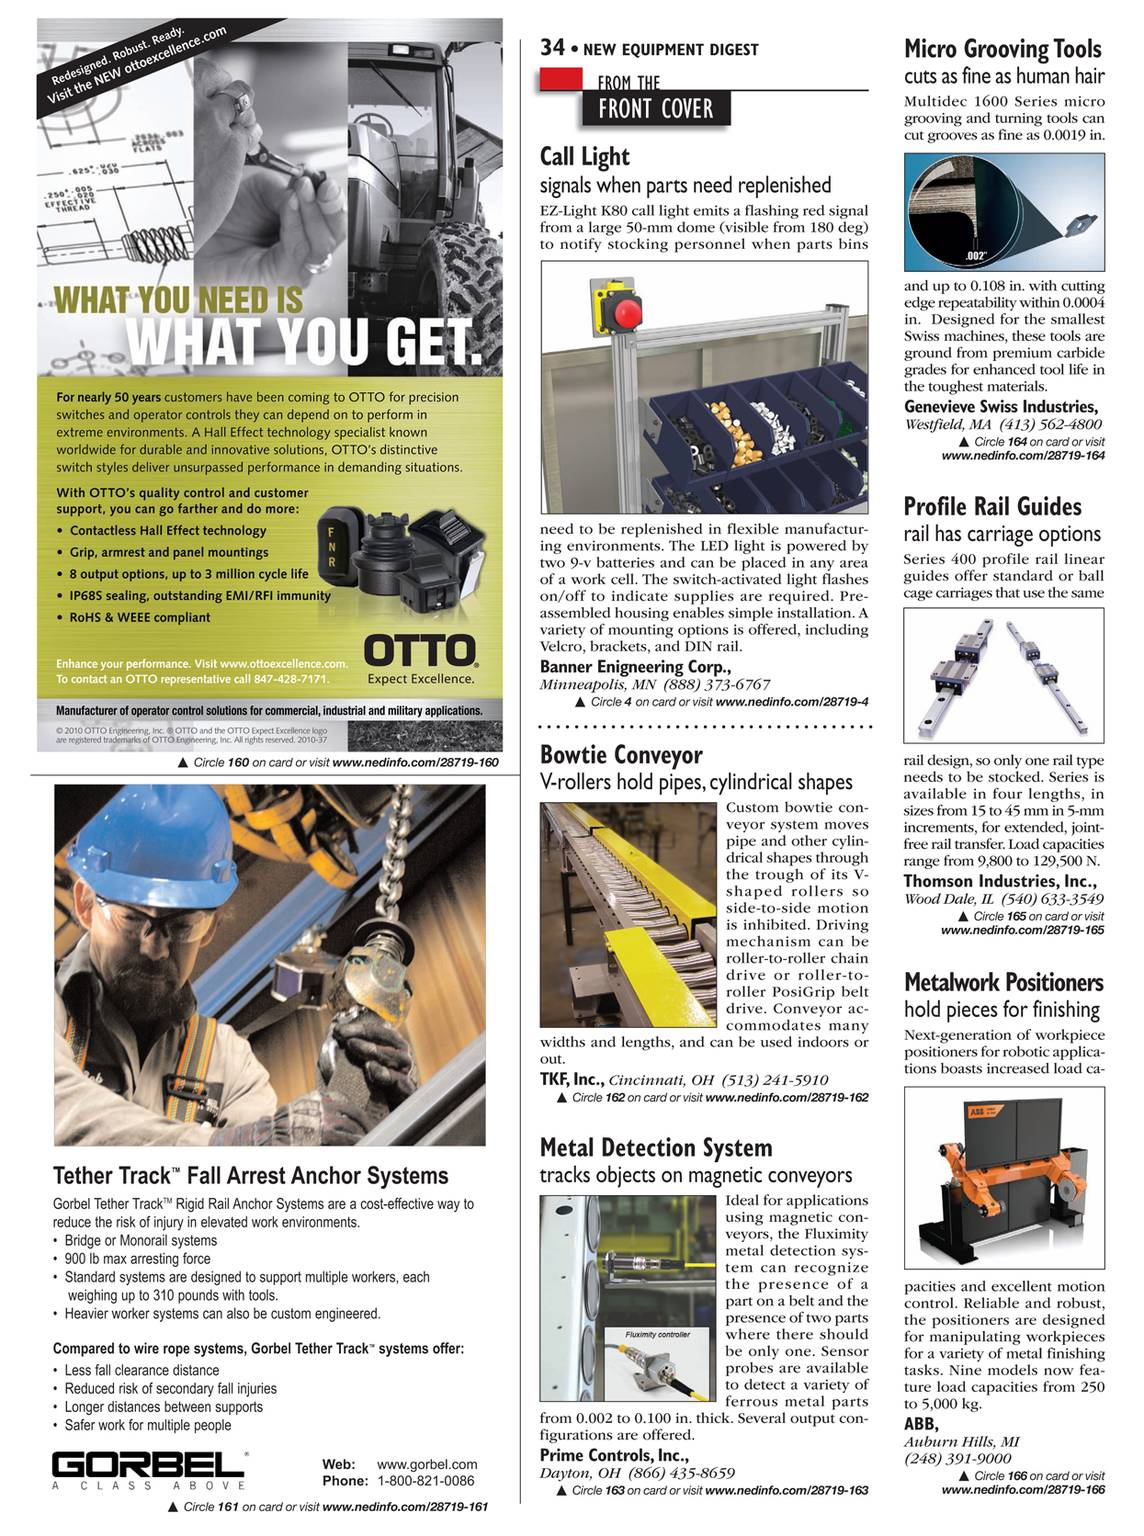 New Equipment Digest - December 2010 - page 35